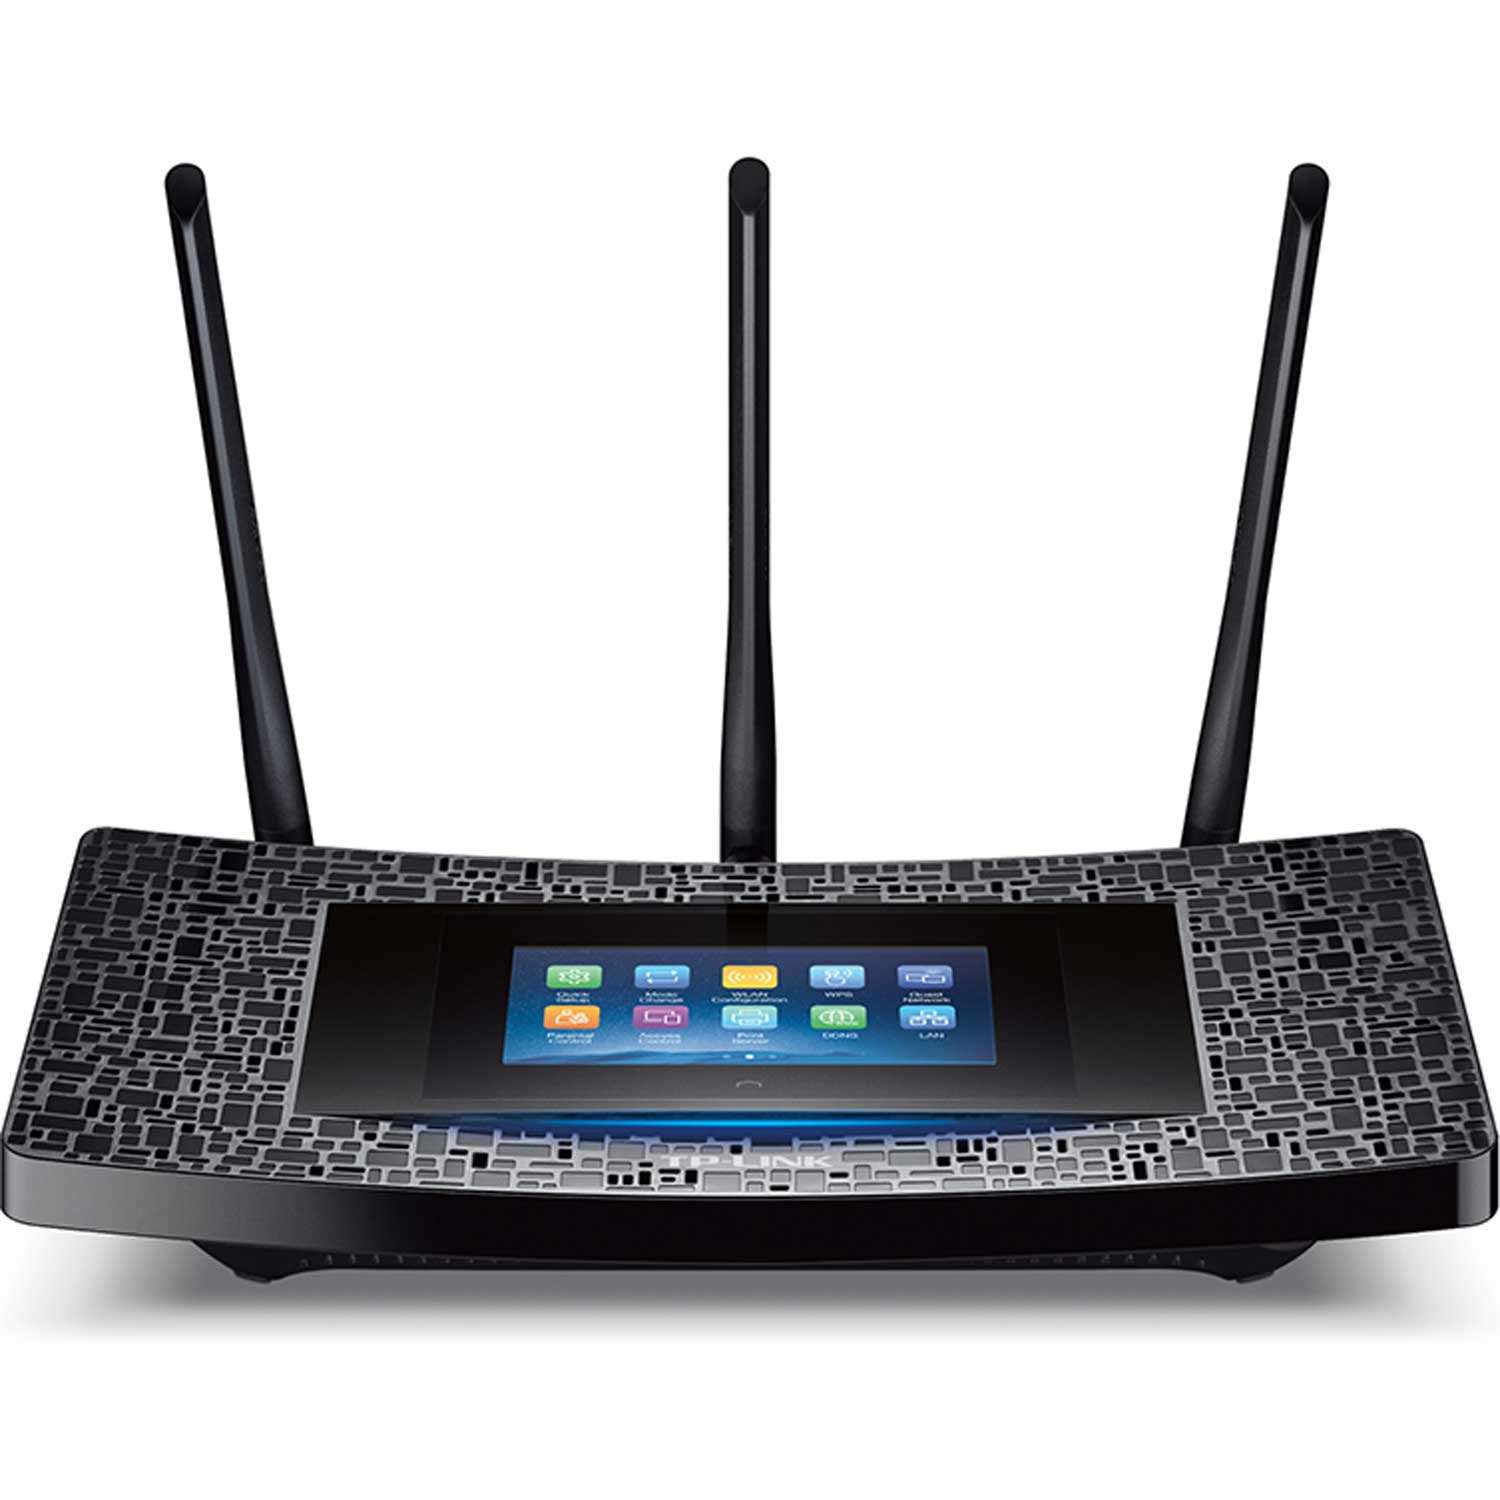 tp link touch p5 modem routeur tp link sur ldlc. Black Bedroom Furniture Sets. Home Design Ideas